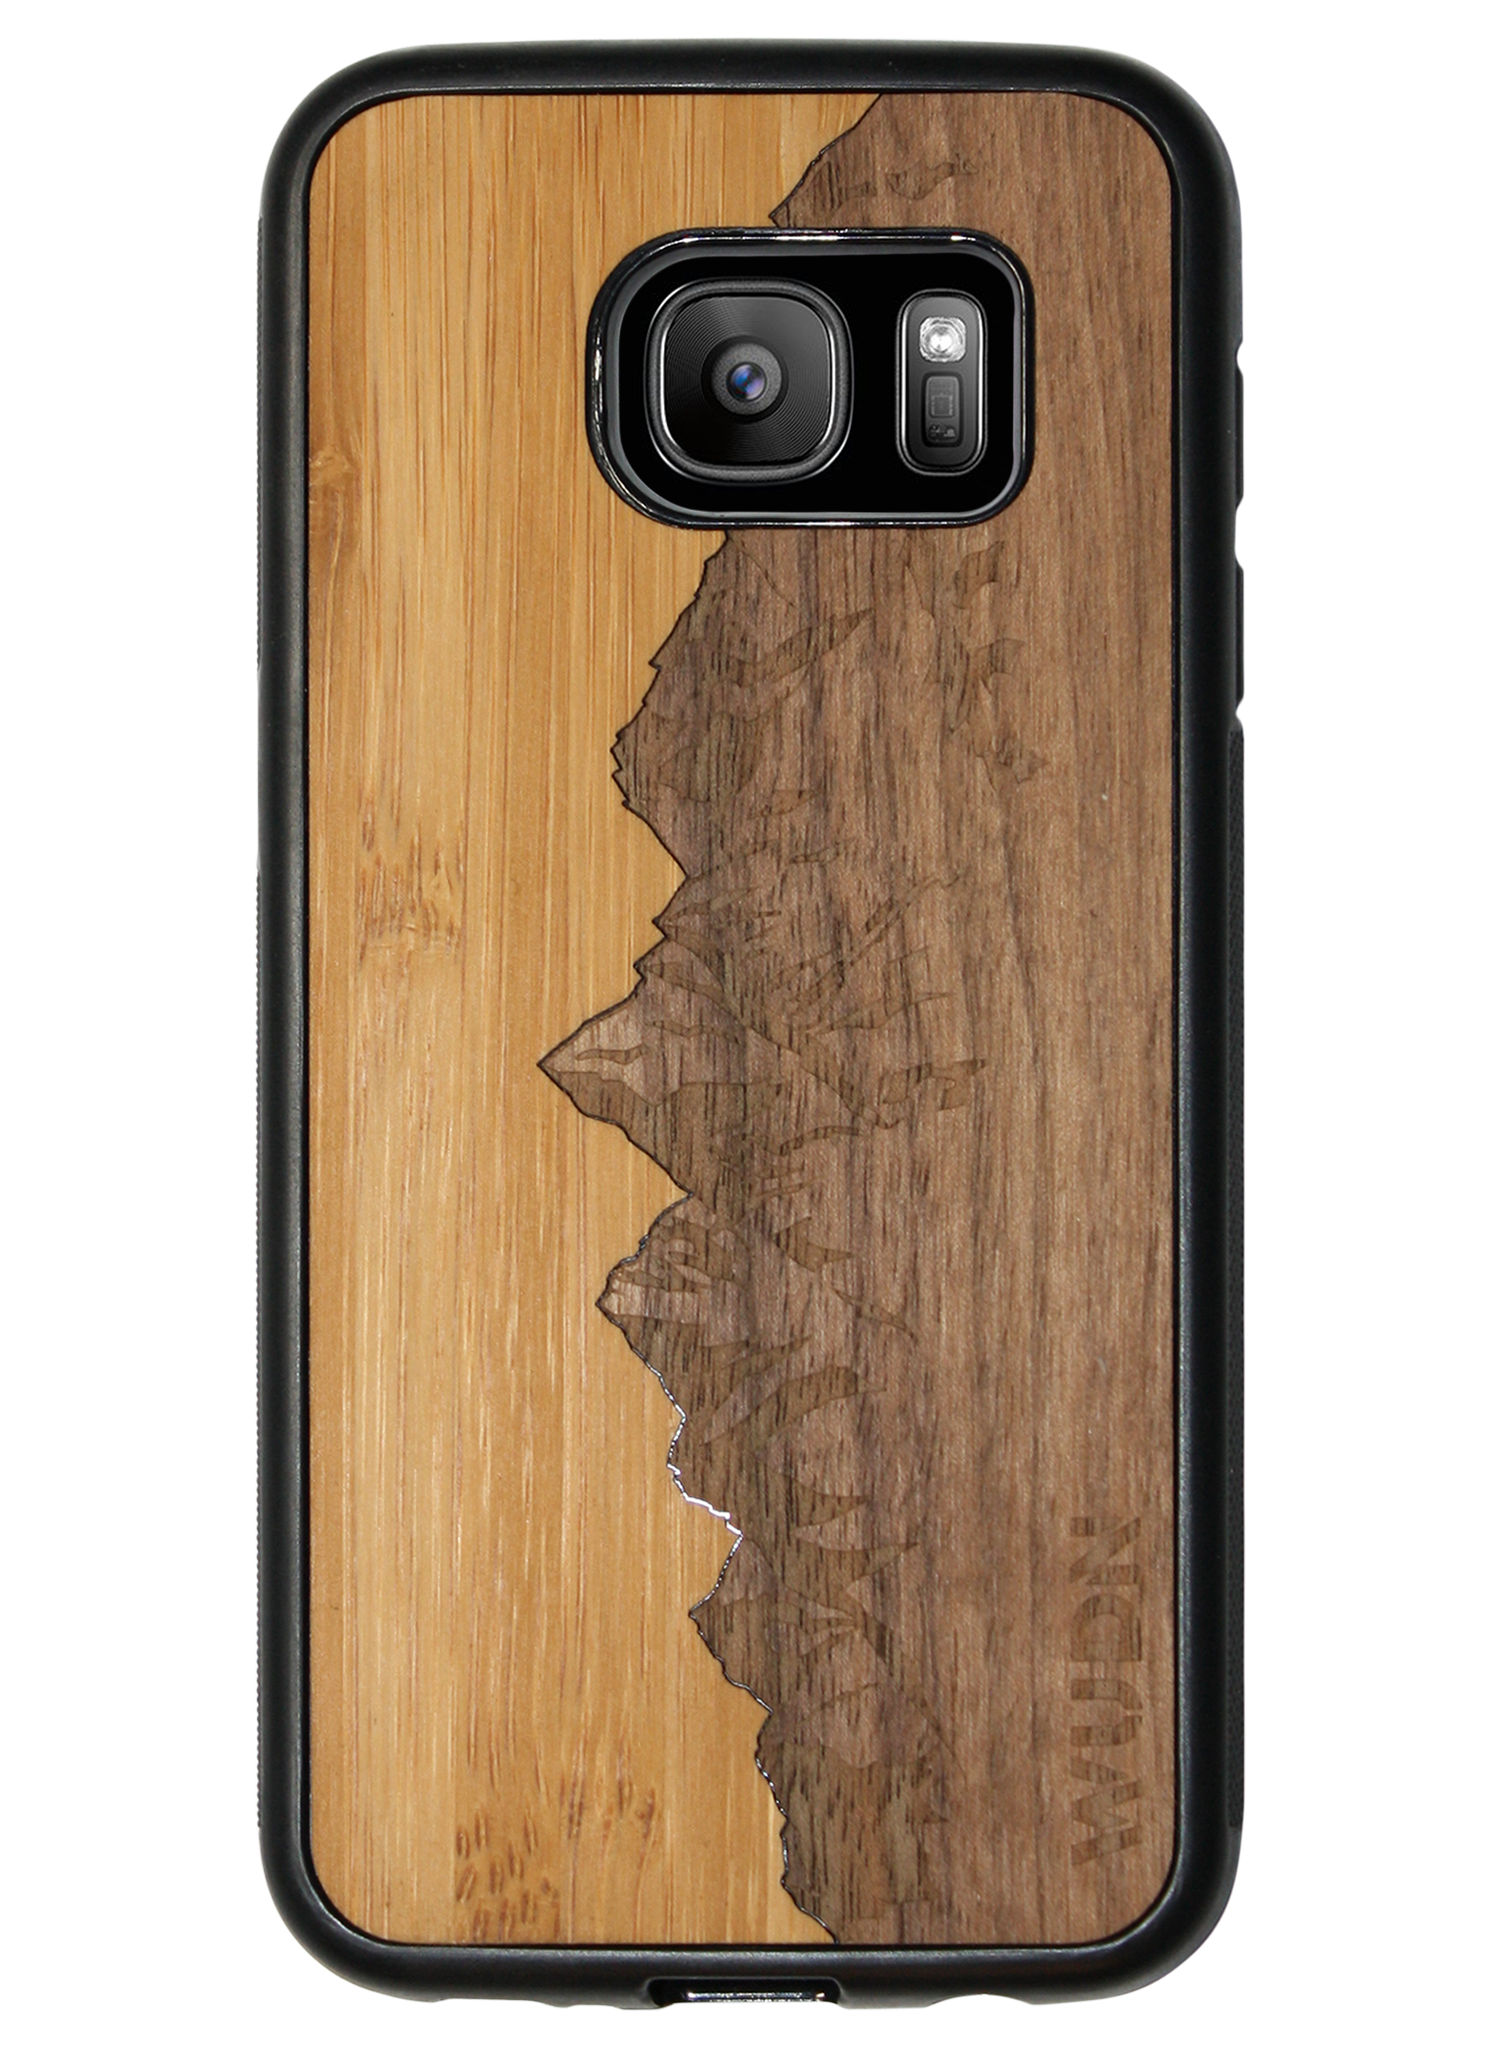 Slim Wooden Phone Case | Sawtooth Mountains Traveler, Cases by WUDN for Galaxy S7